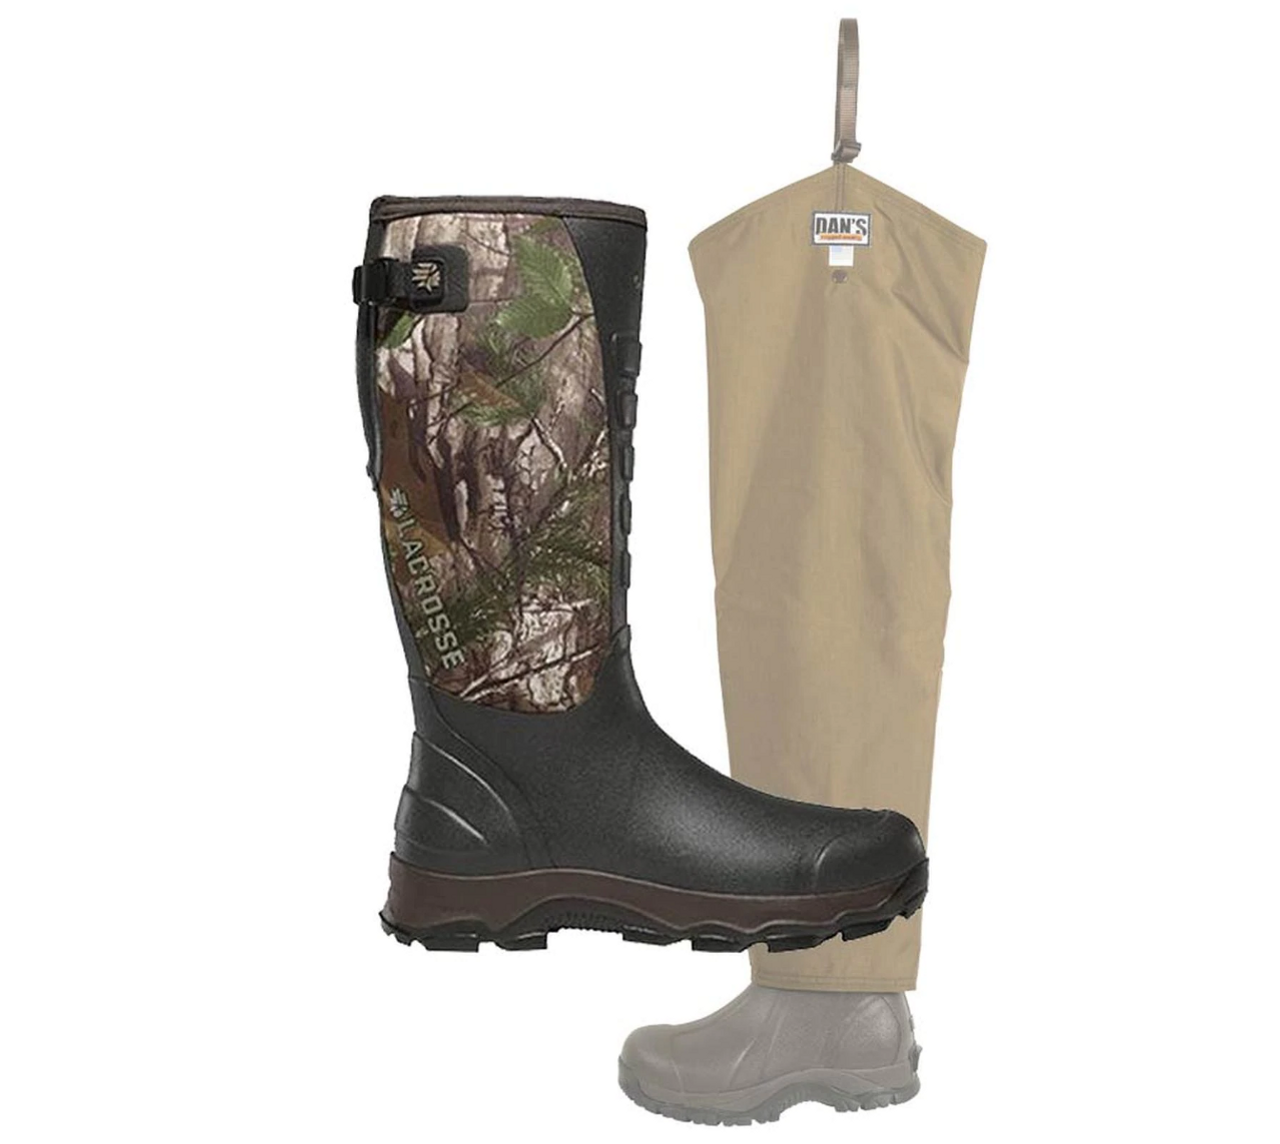 LaCrosse 4X Alpha Boot with Five Star Briarproof Froglegs